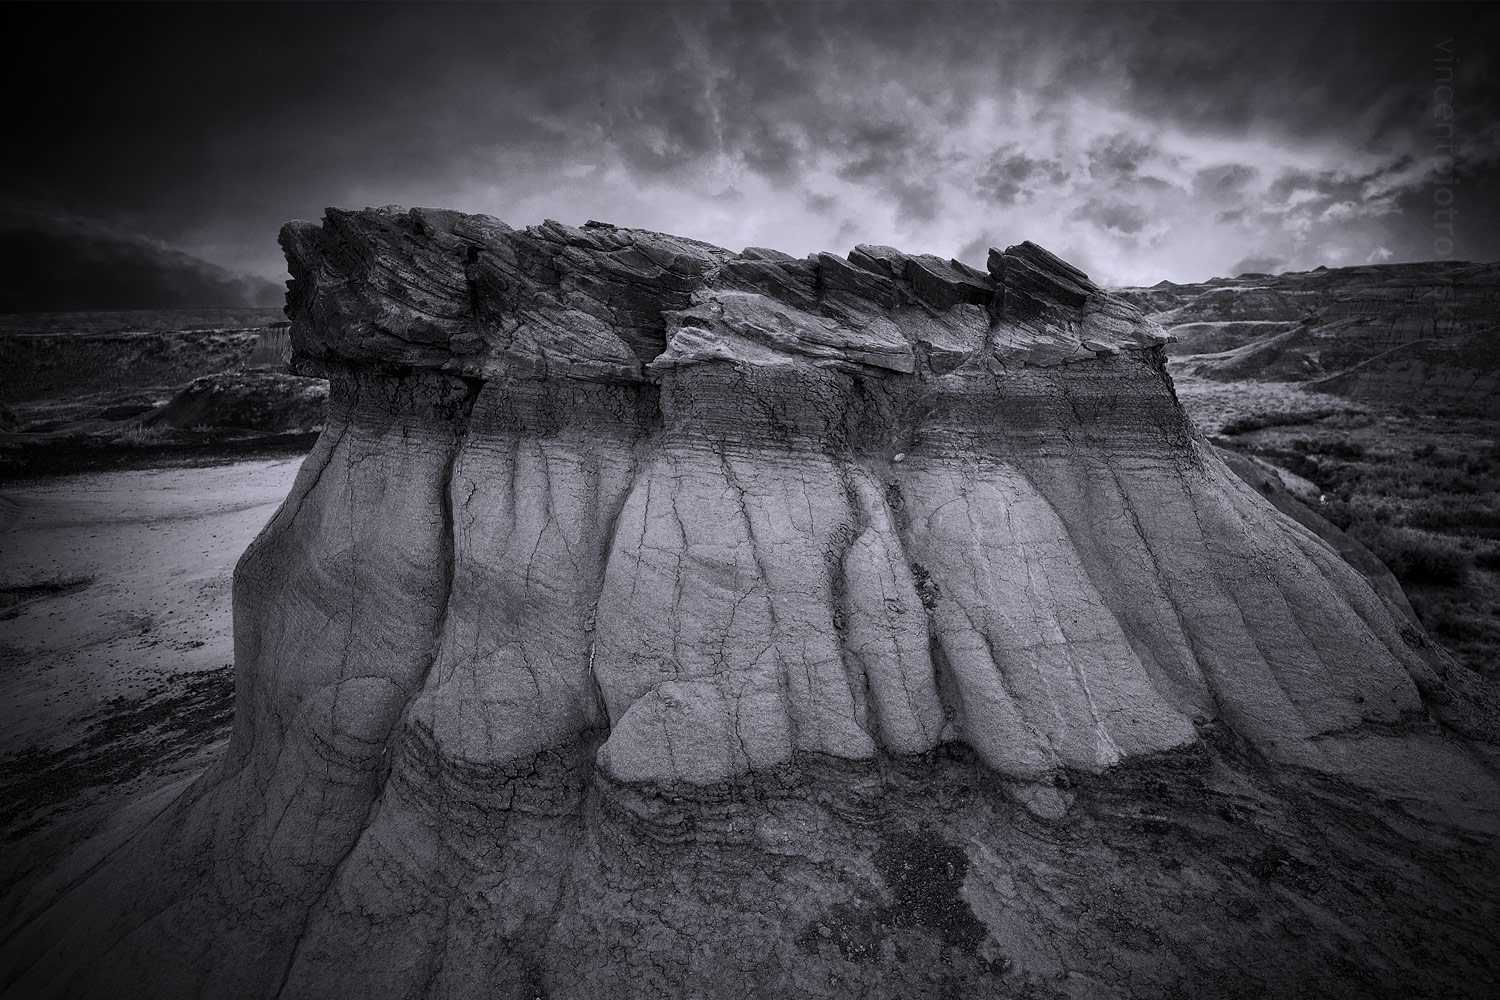 A picture of a hoodoo and rocks taken in Dinosaur Provincial Park and captured in black and white